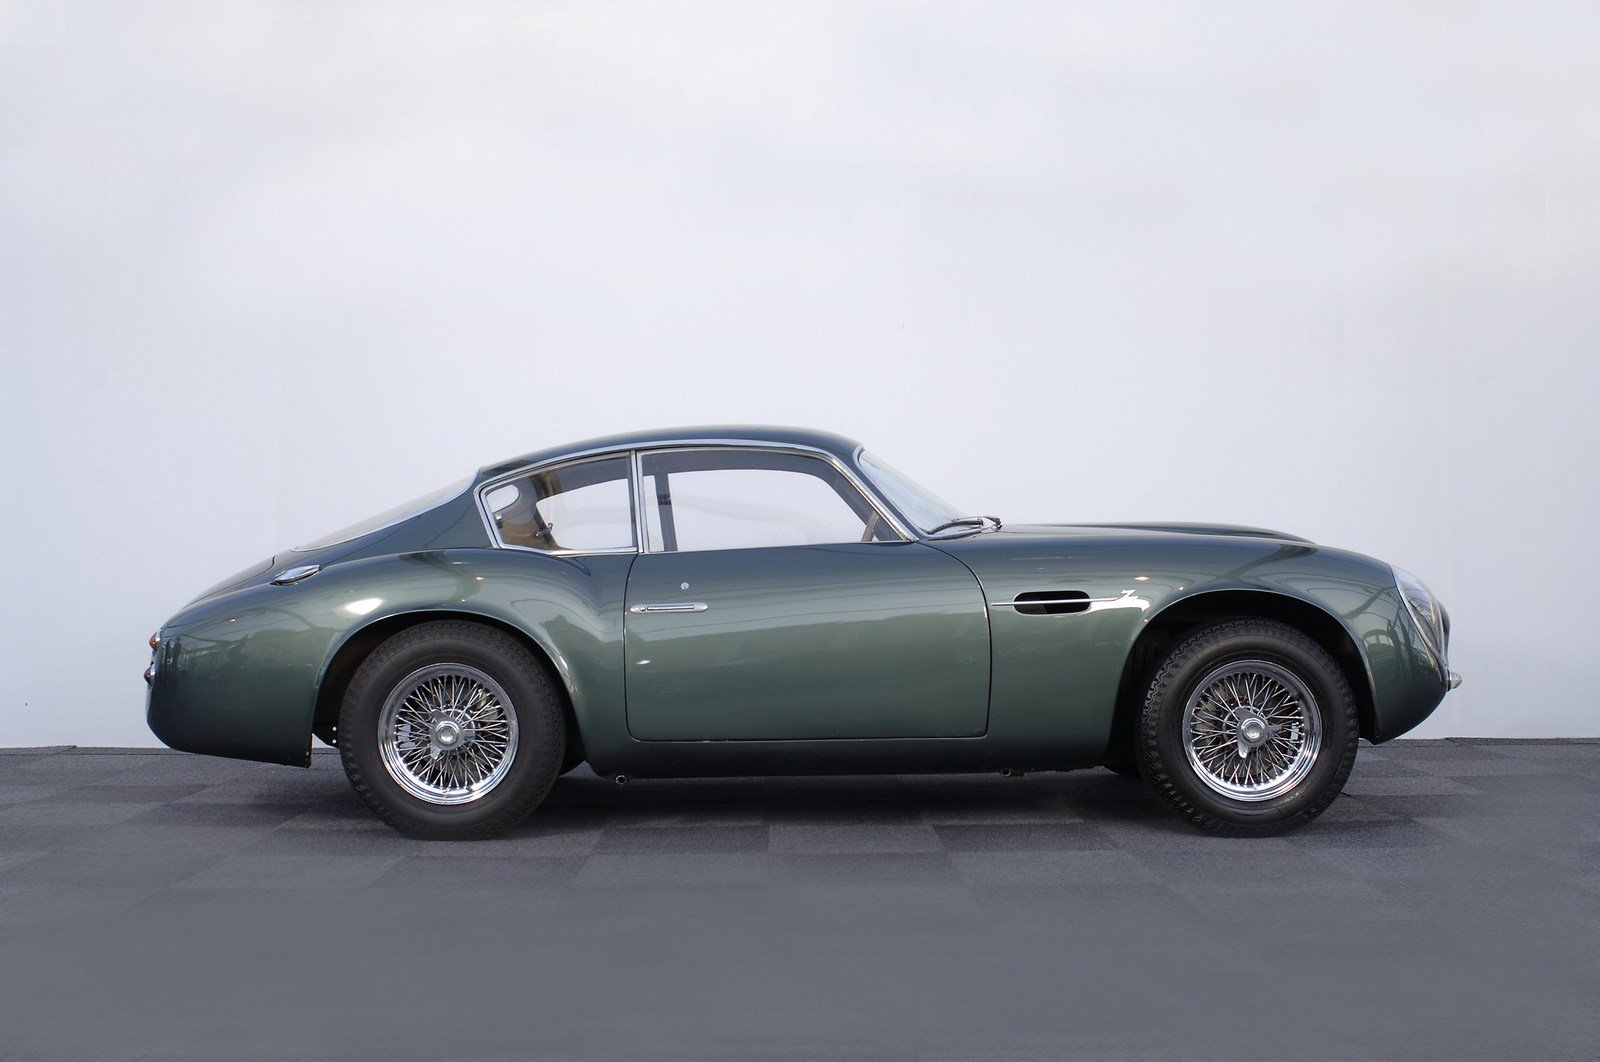 1991 aston martin db4 gt zagato sanction ii picture 452144 car review top speed. Black Bedroom Furniture Sets. Home Design Ideas